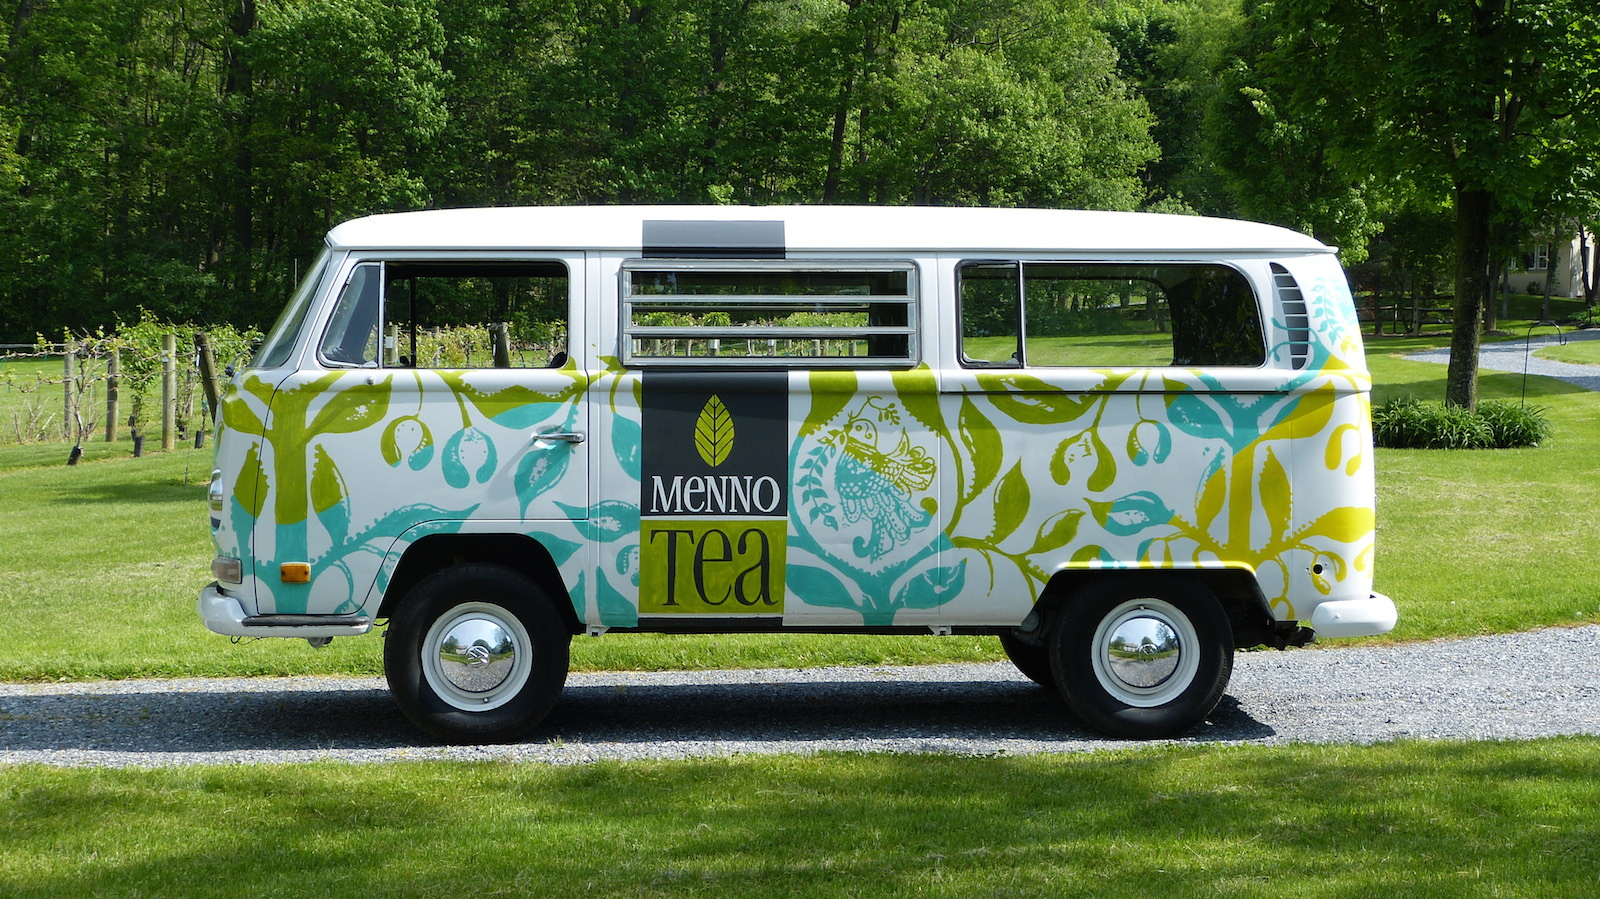 menno-tea-1970-vw-transporter-bus